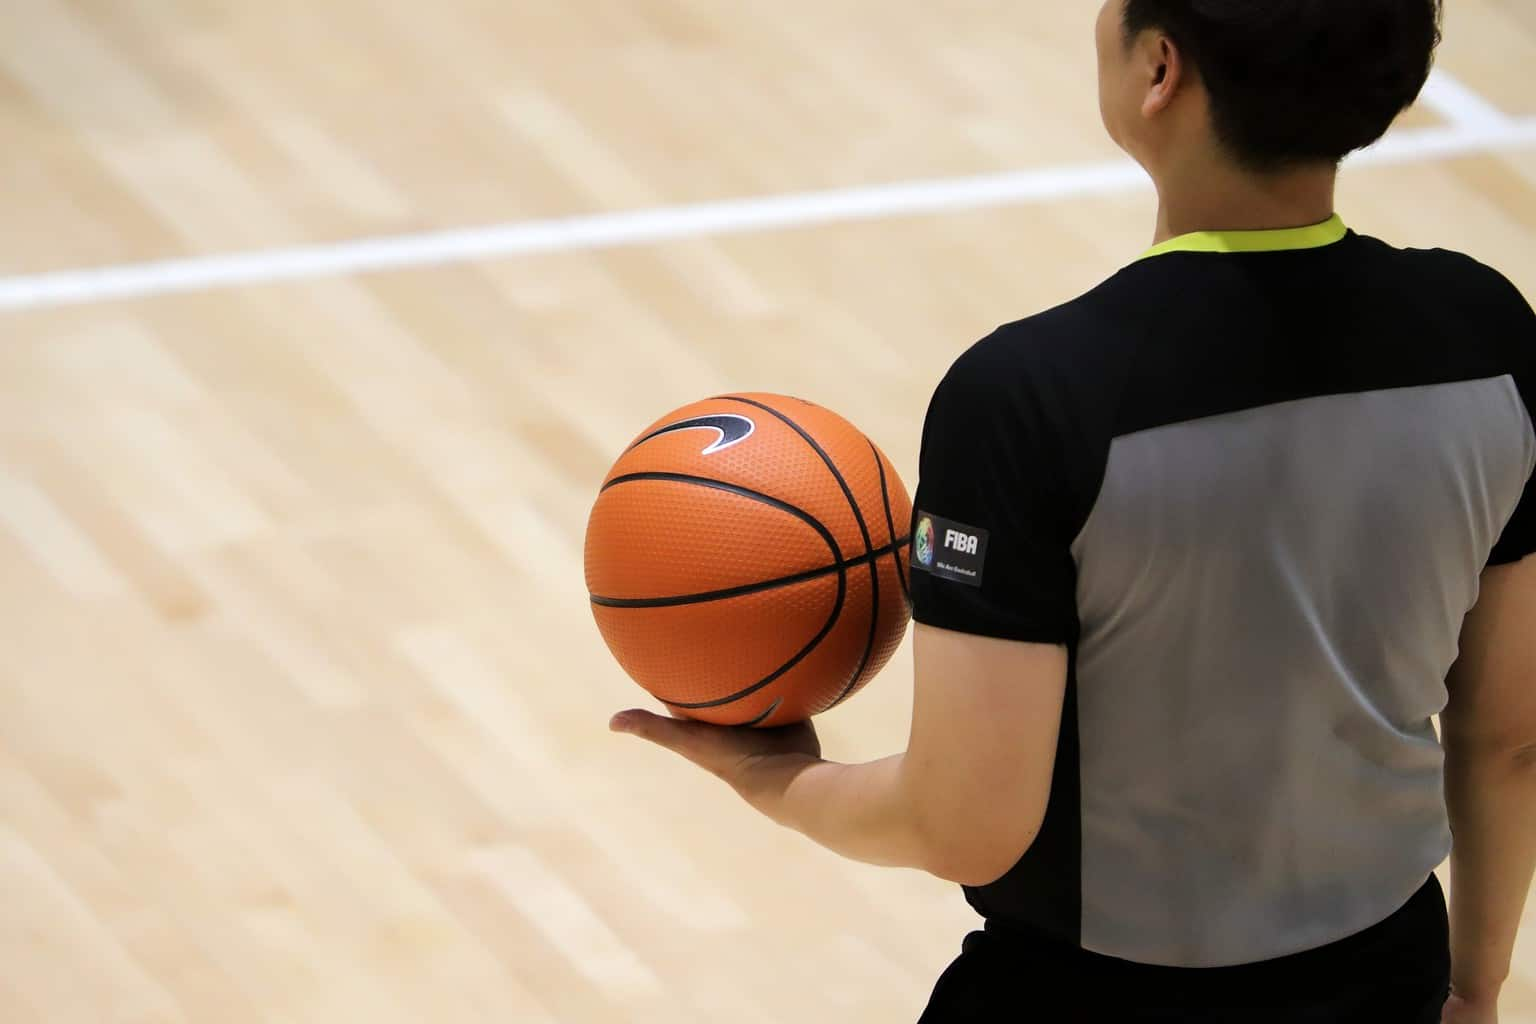 A basketball referee holding a basketball in the court